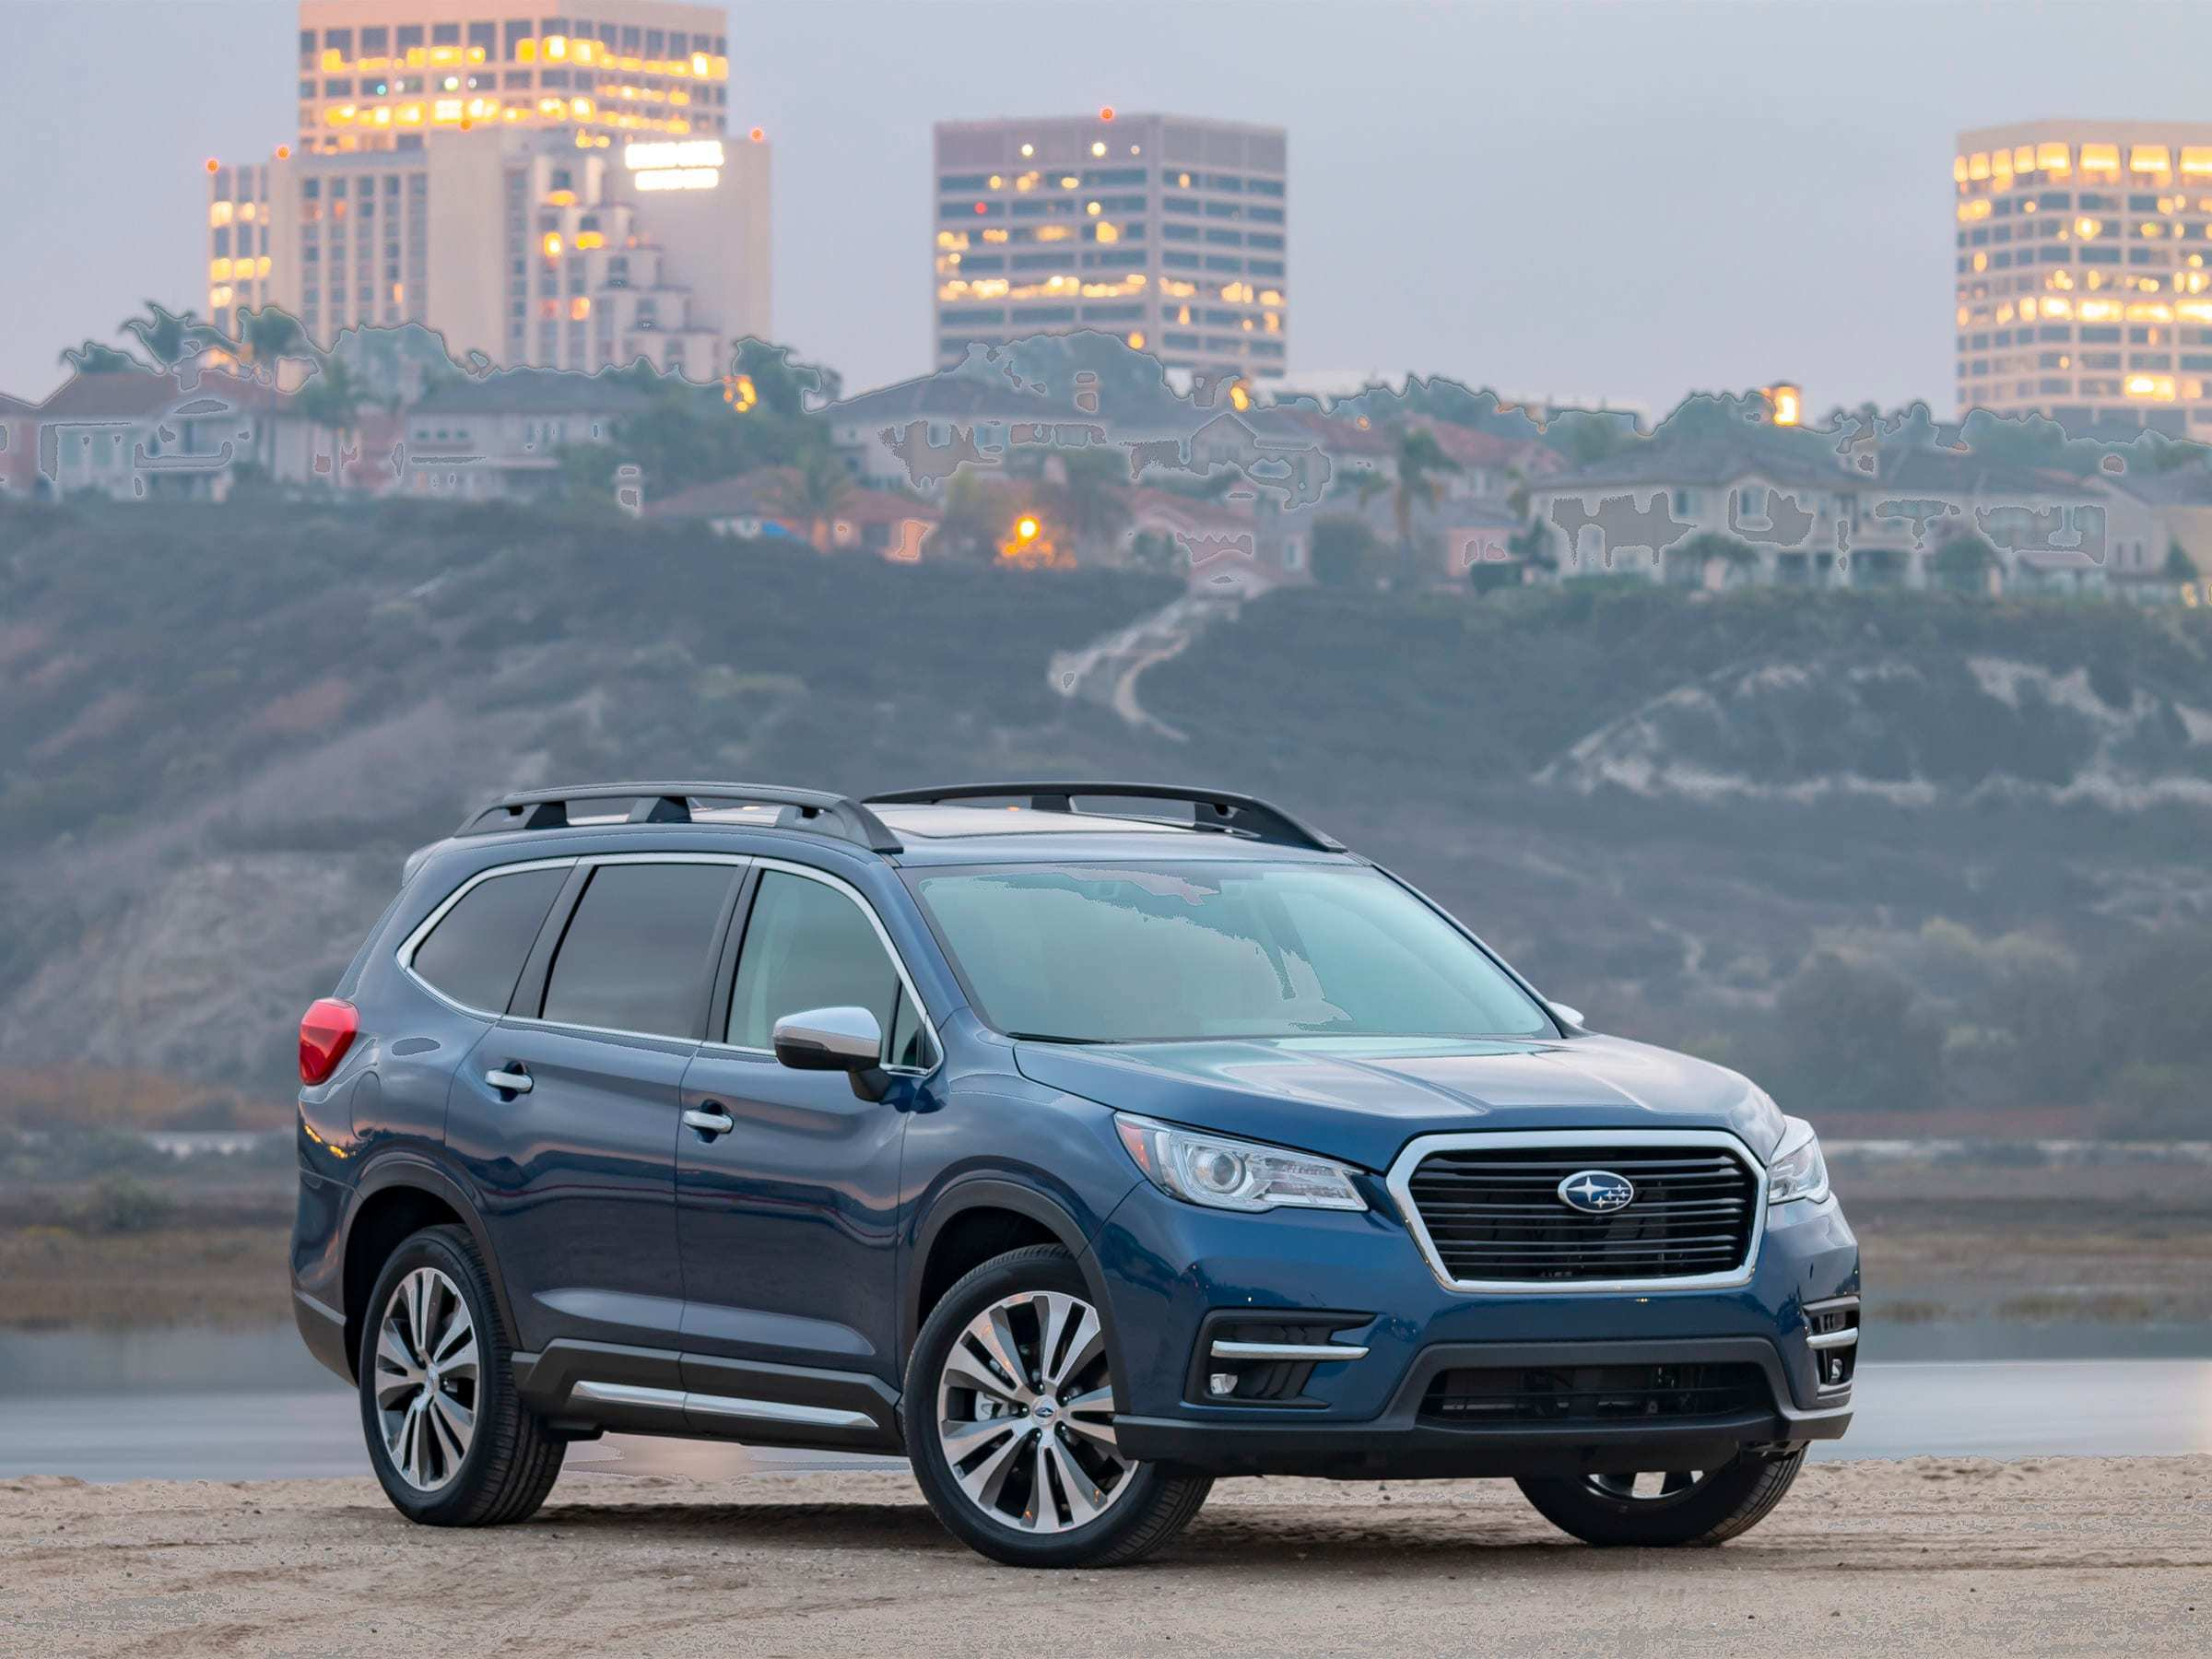 39 Concept of 2019 Subaru Ascent Kbb Price and Review by 2019 Subaru Ascent Kbb